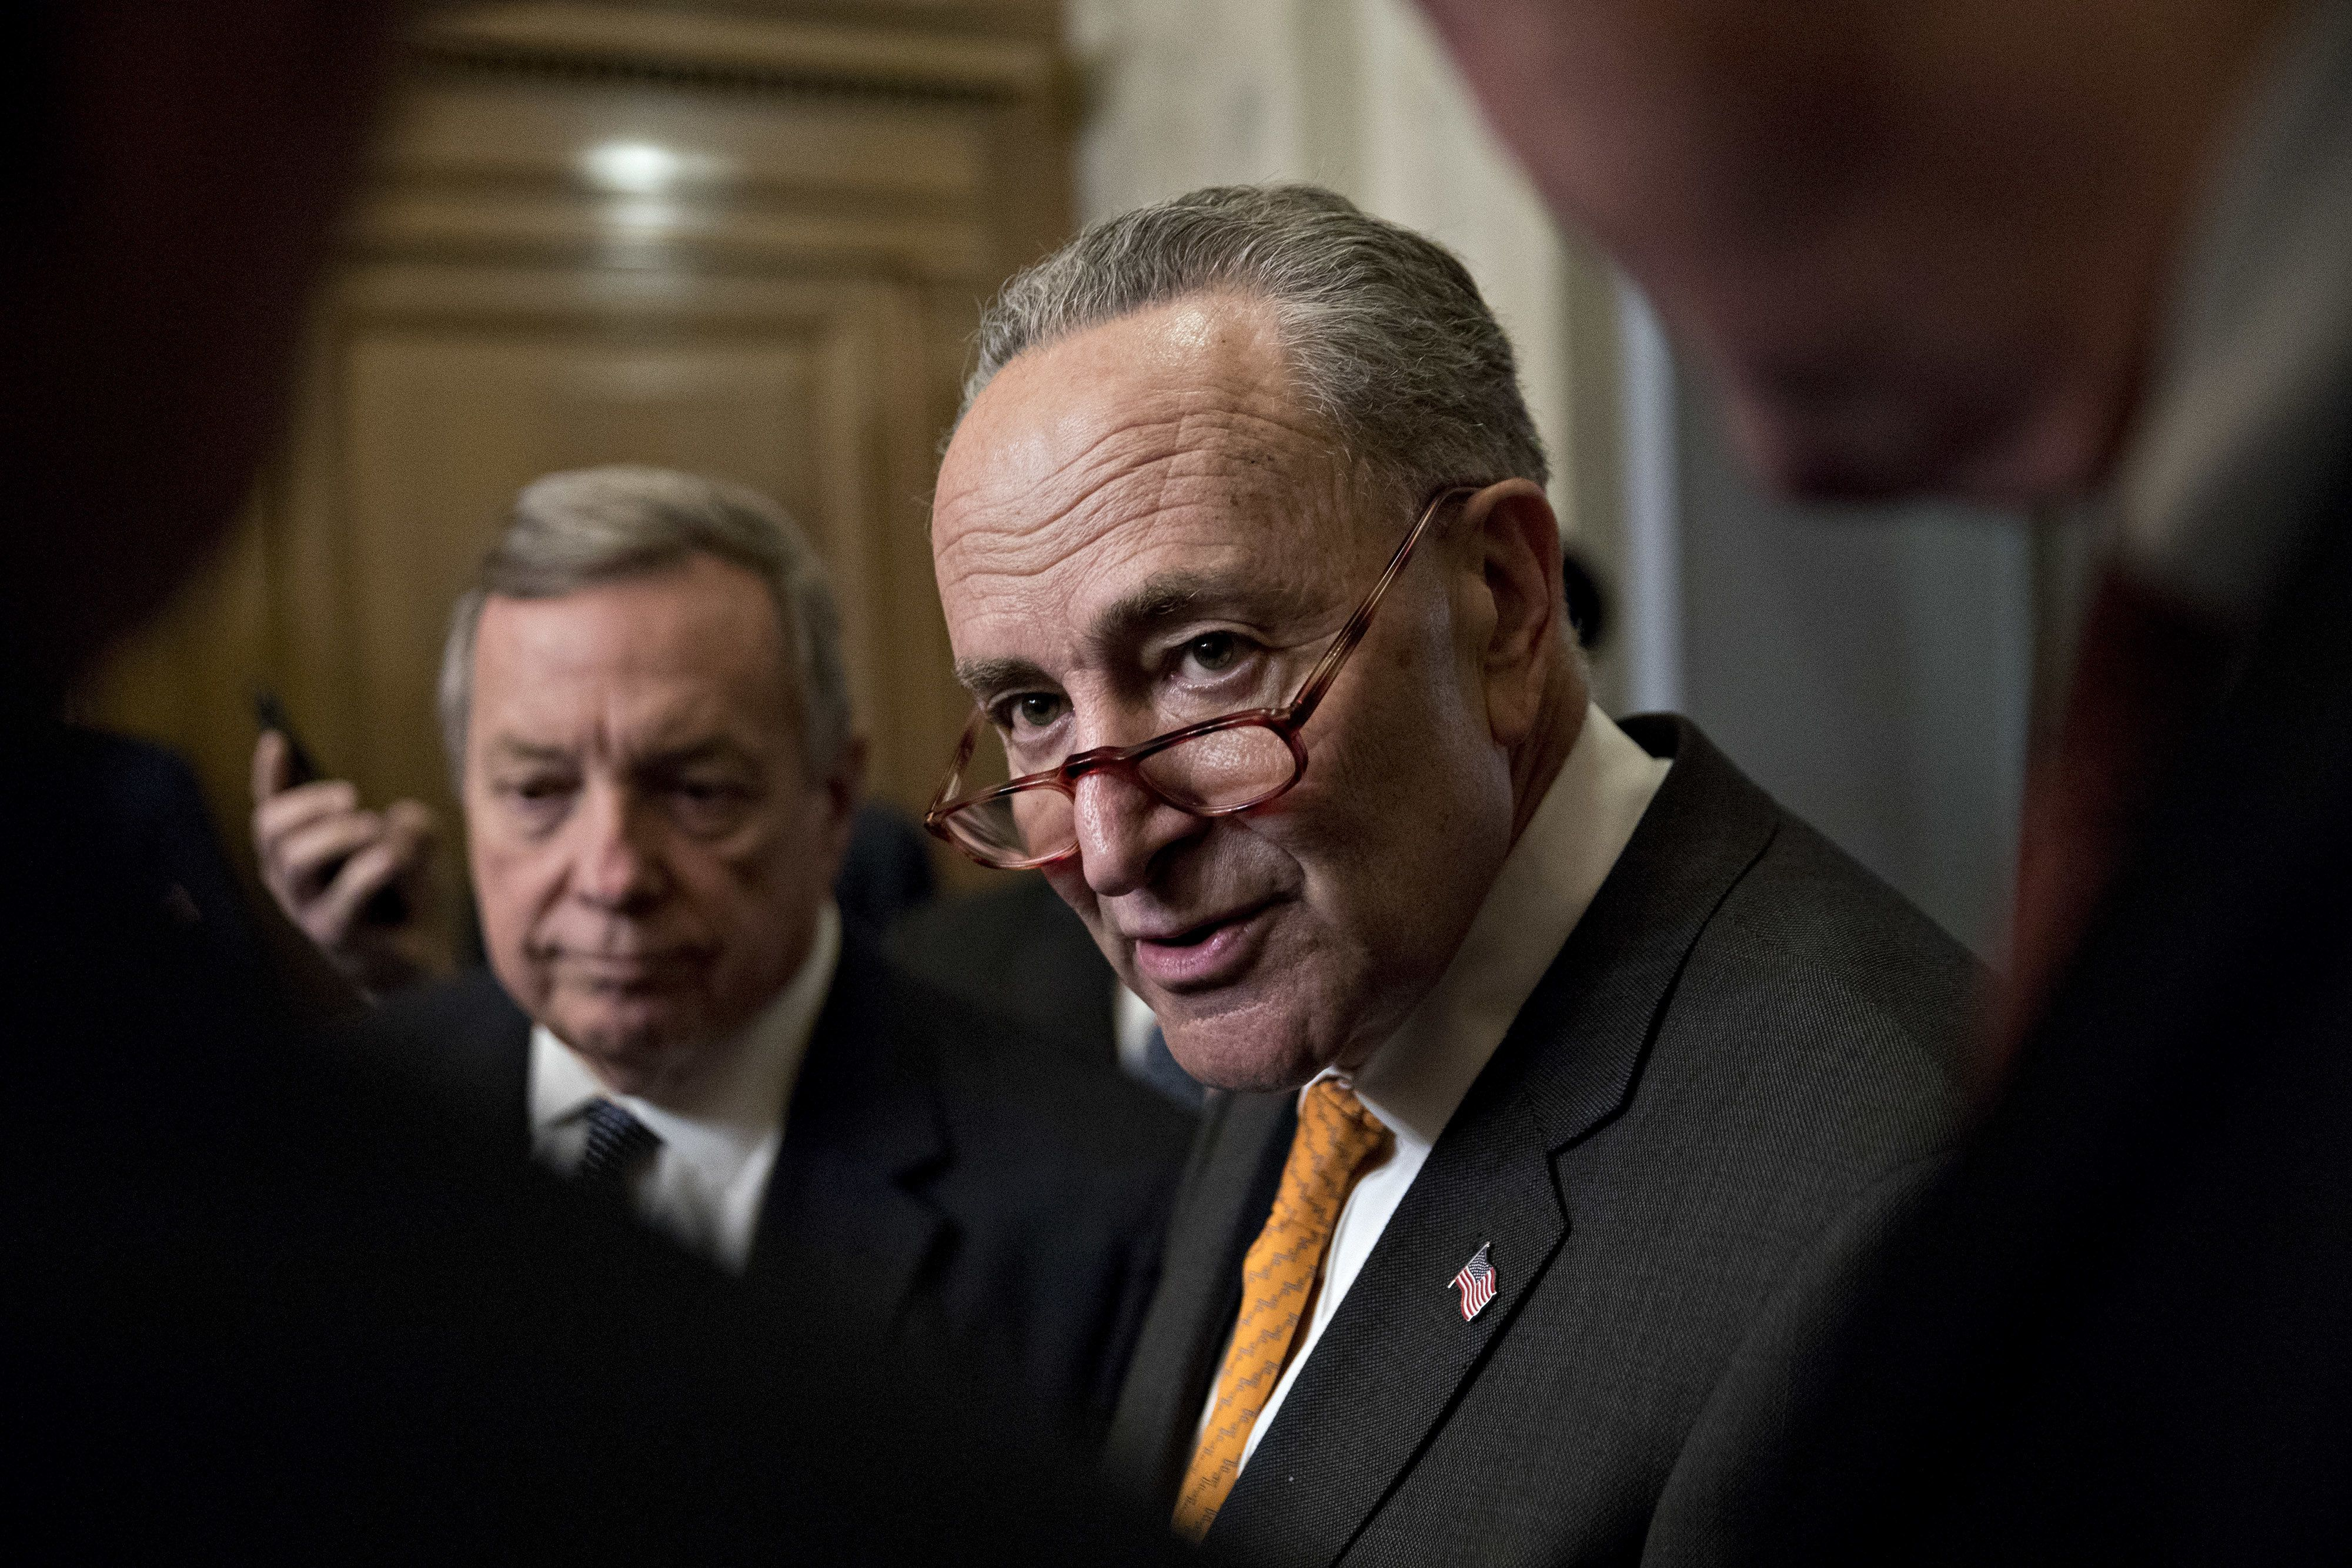 Senate Minority Leader Chuck Schumer, a Democrat from New York, speaks to members of the media at the U.S. Capitol after arriving from a meeting at the White House in Washington, D.C., U.S., on Wednesday, Jan. 9, 2019. President Donald Trump stormed out of a White House meeting with congressional leaders Wednesday as talks to end a nearly three-week government shutdown collapsed over his continued insistence on border wall funding. Photographer: Andrew Harrer/Bloomberg via Getty Images